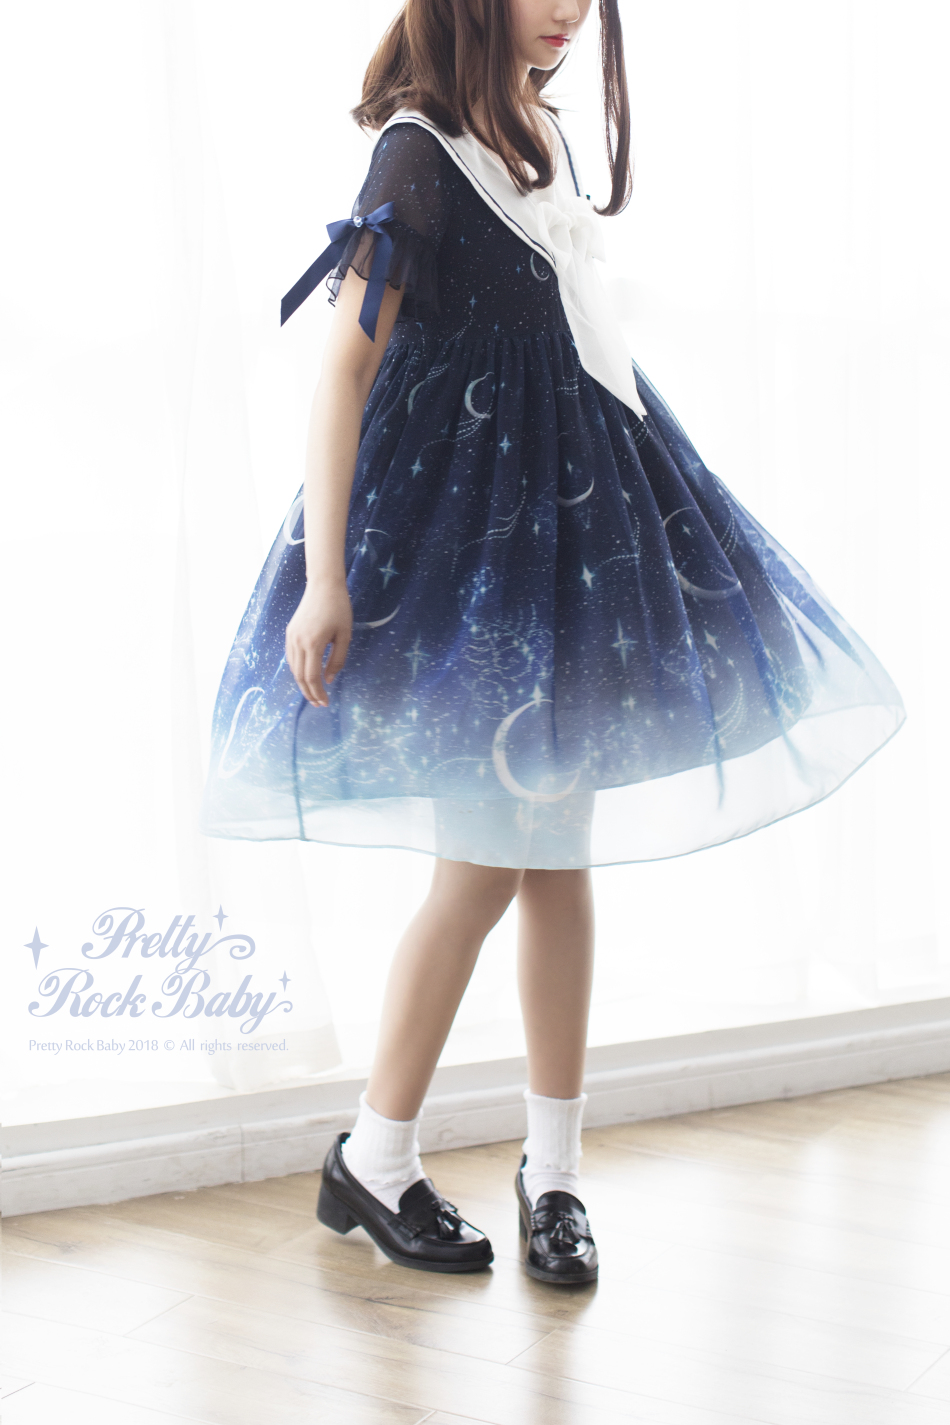 ddbe5453cfd7 Pretty Rock Baby -Starry Night of The Summer- Sailor Lolita OP Dress